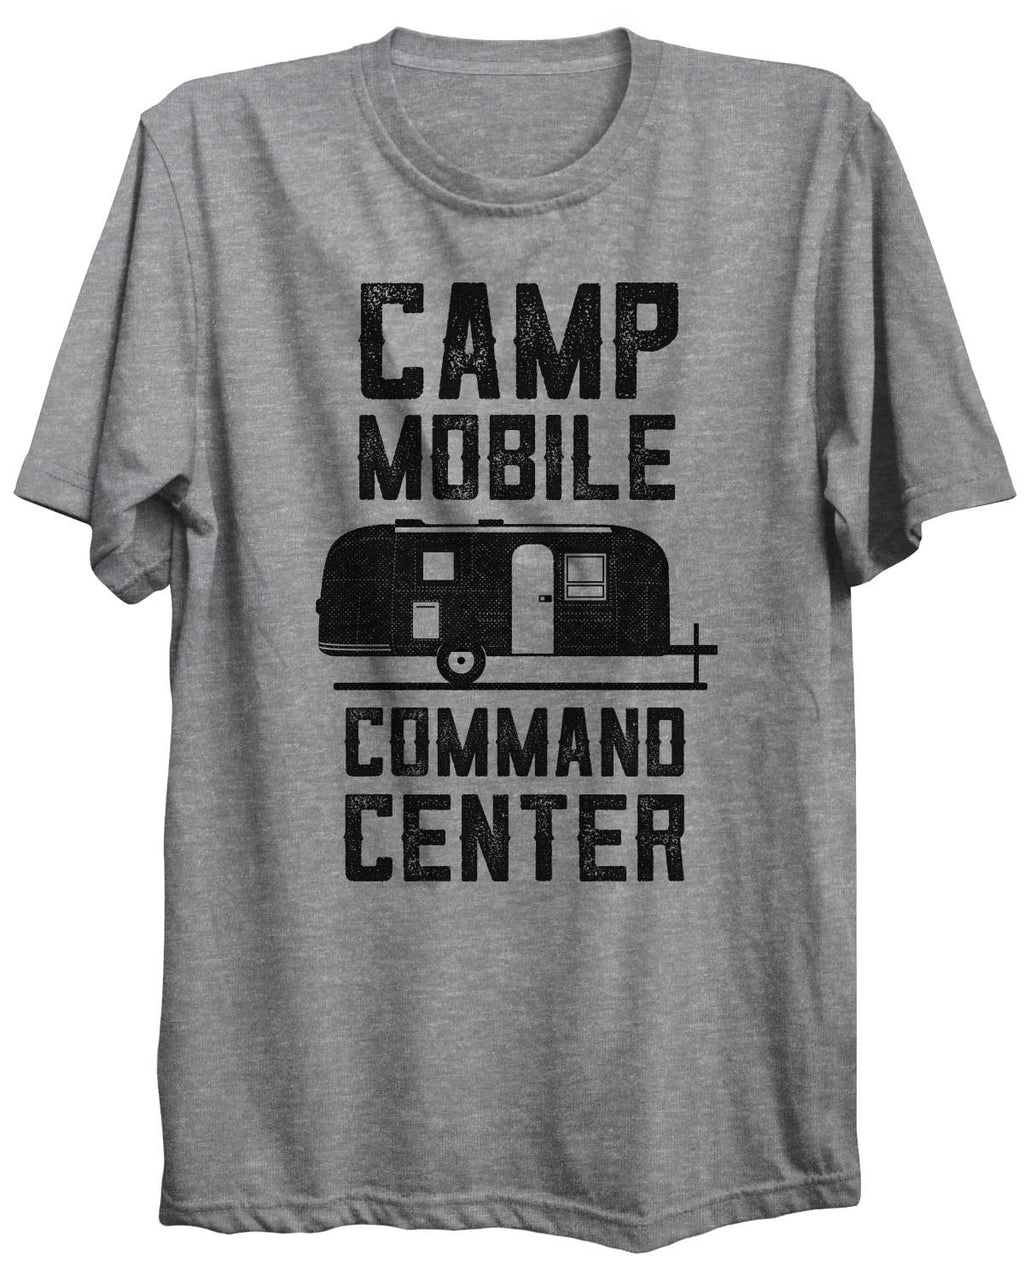 Camp Mobile Command Center Camping Outdoors Unisex Tshirt